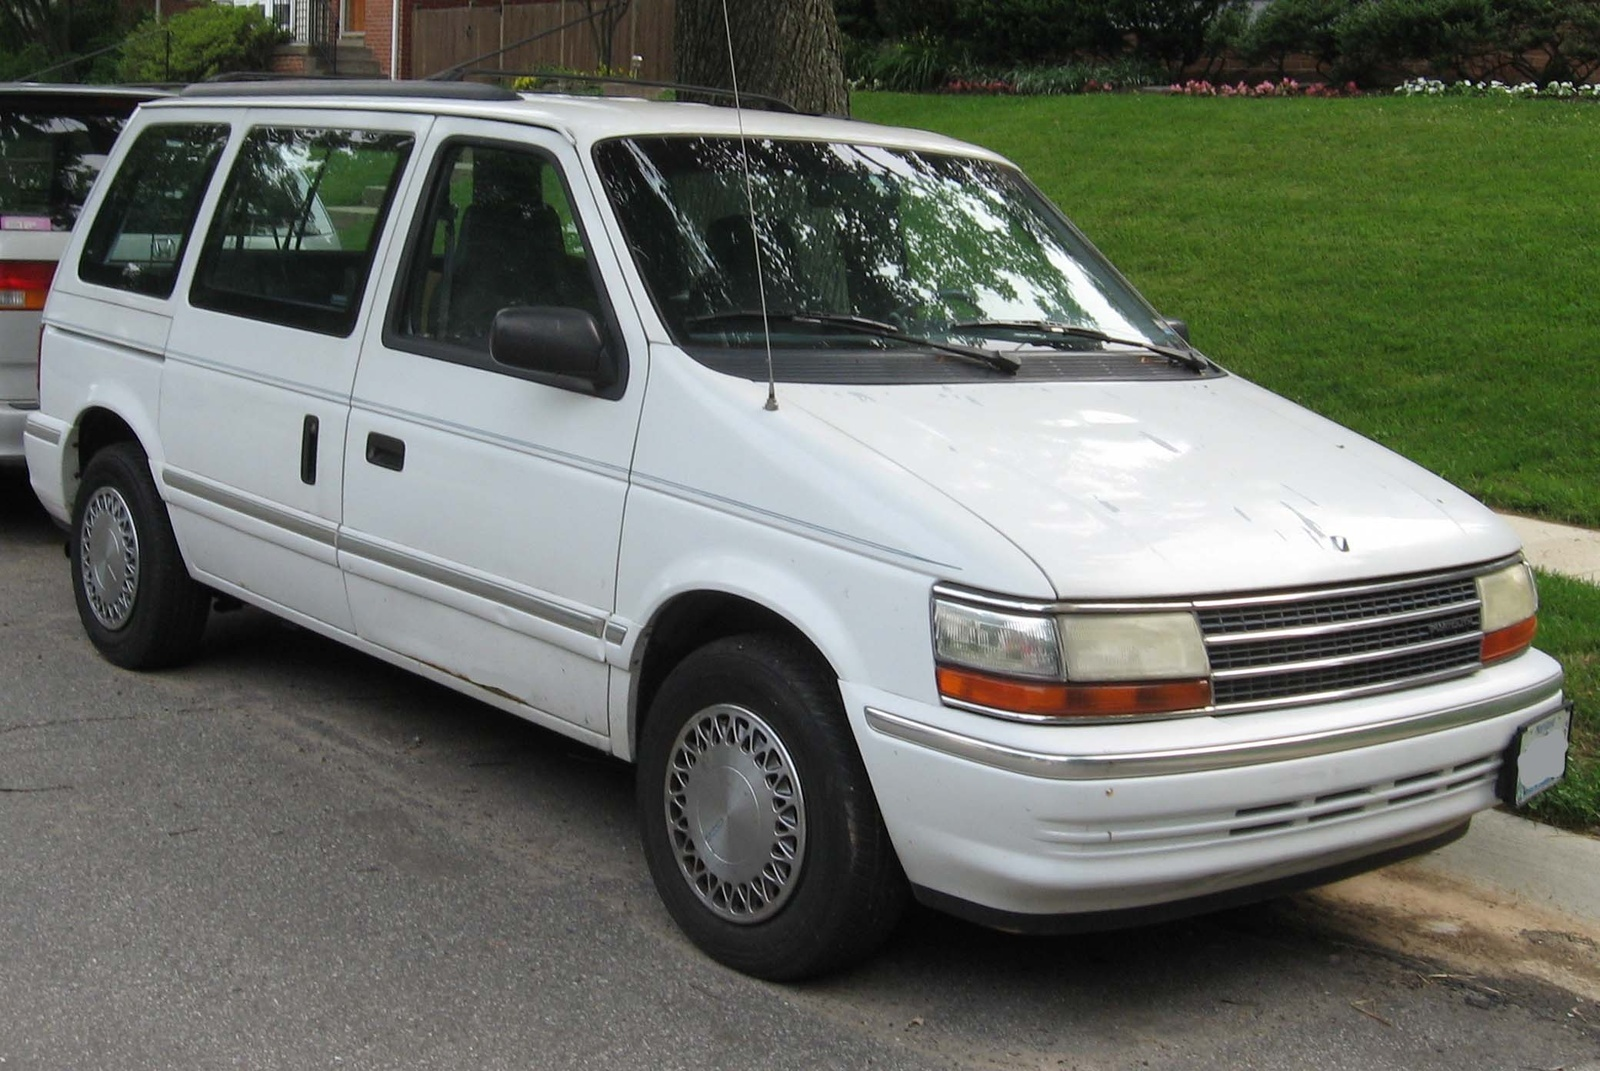 Plymouth voyager photo - 7